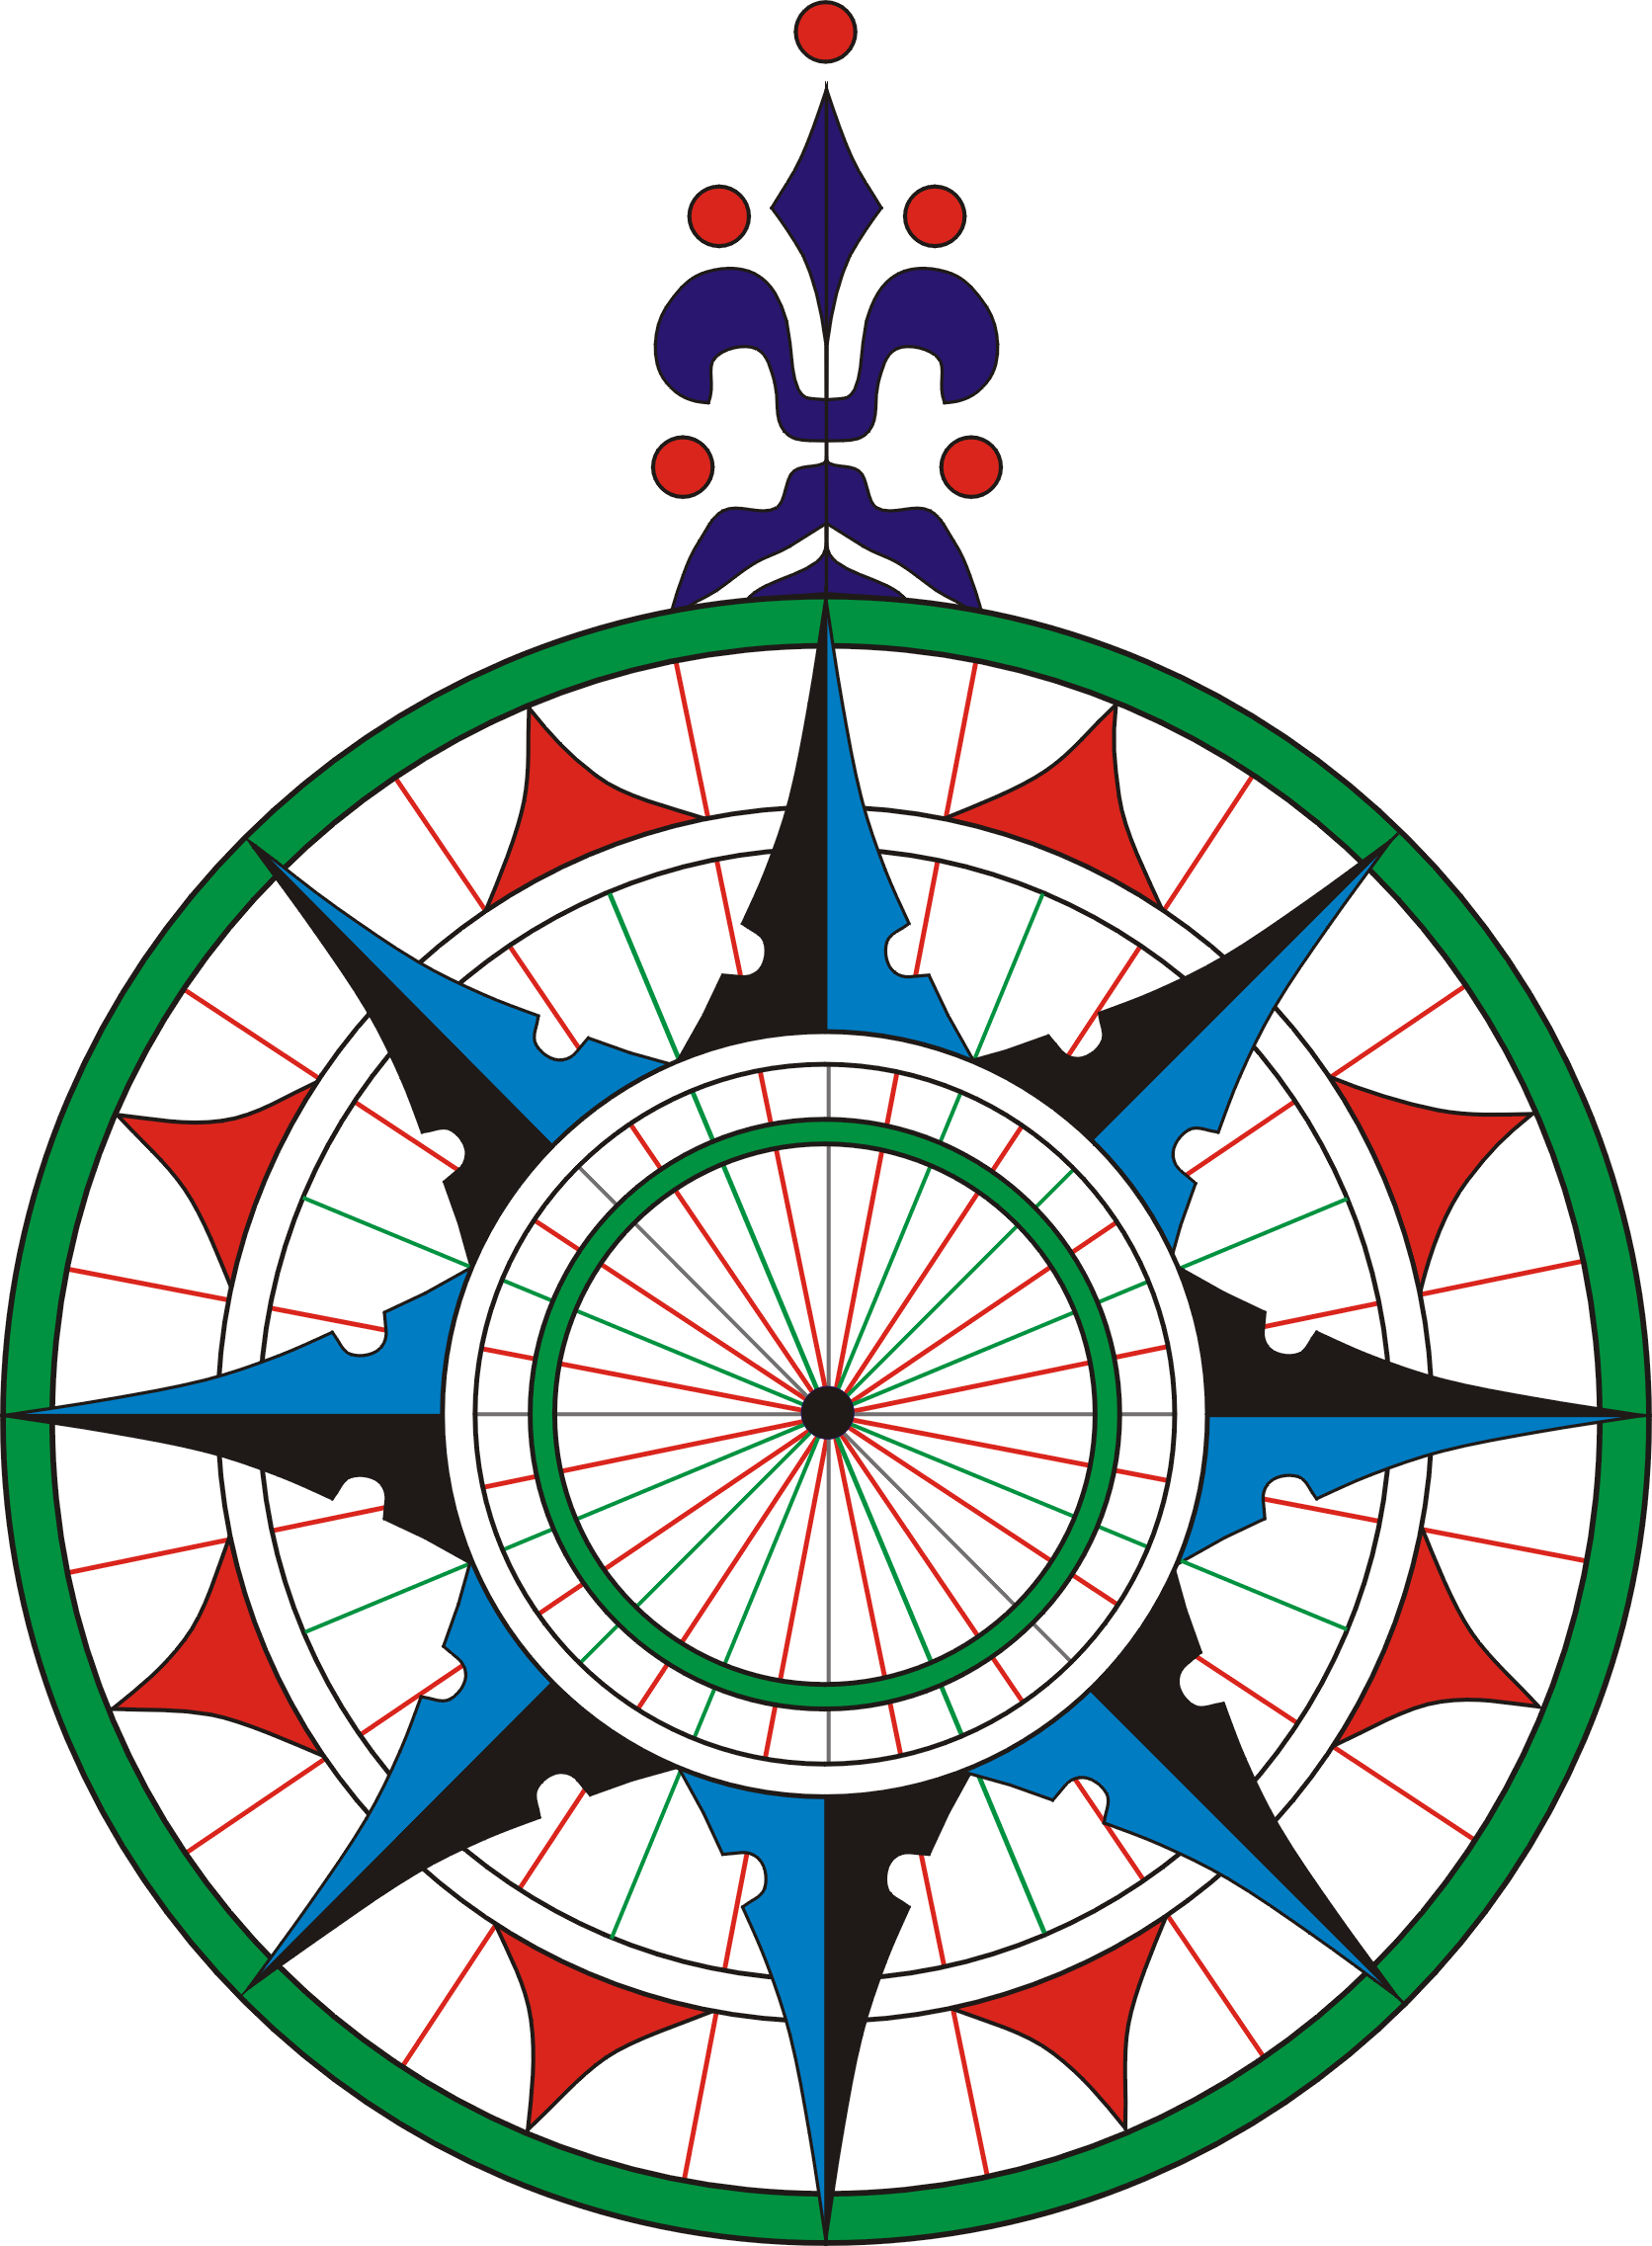 picture relating to Printable Compass Rose referred to as Printable Comp Rose 14, Order Clip Artwork - Comp Rose Png